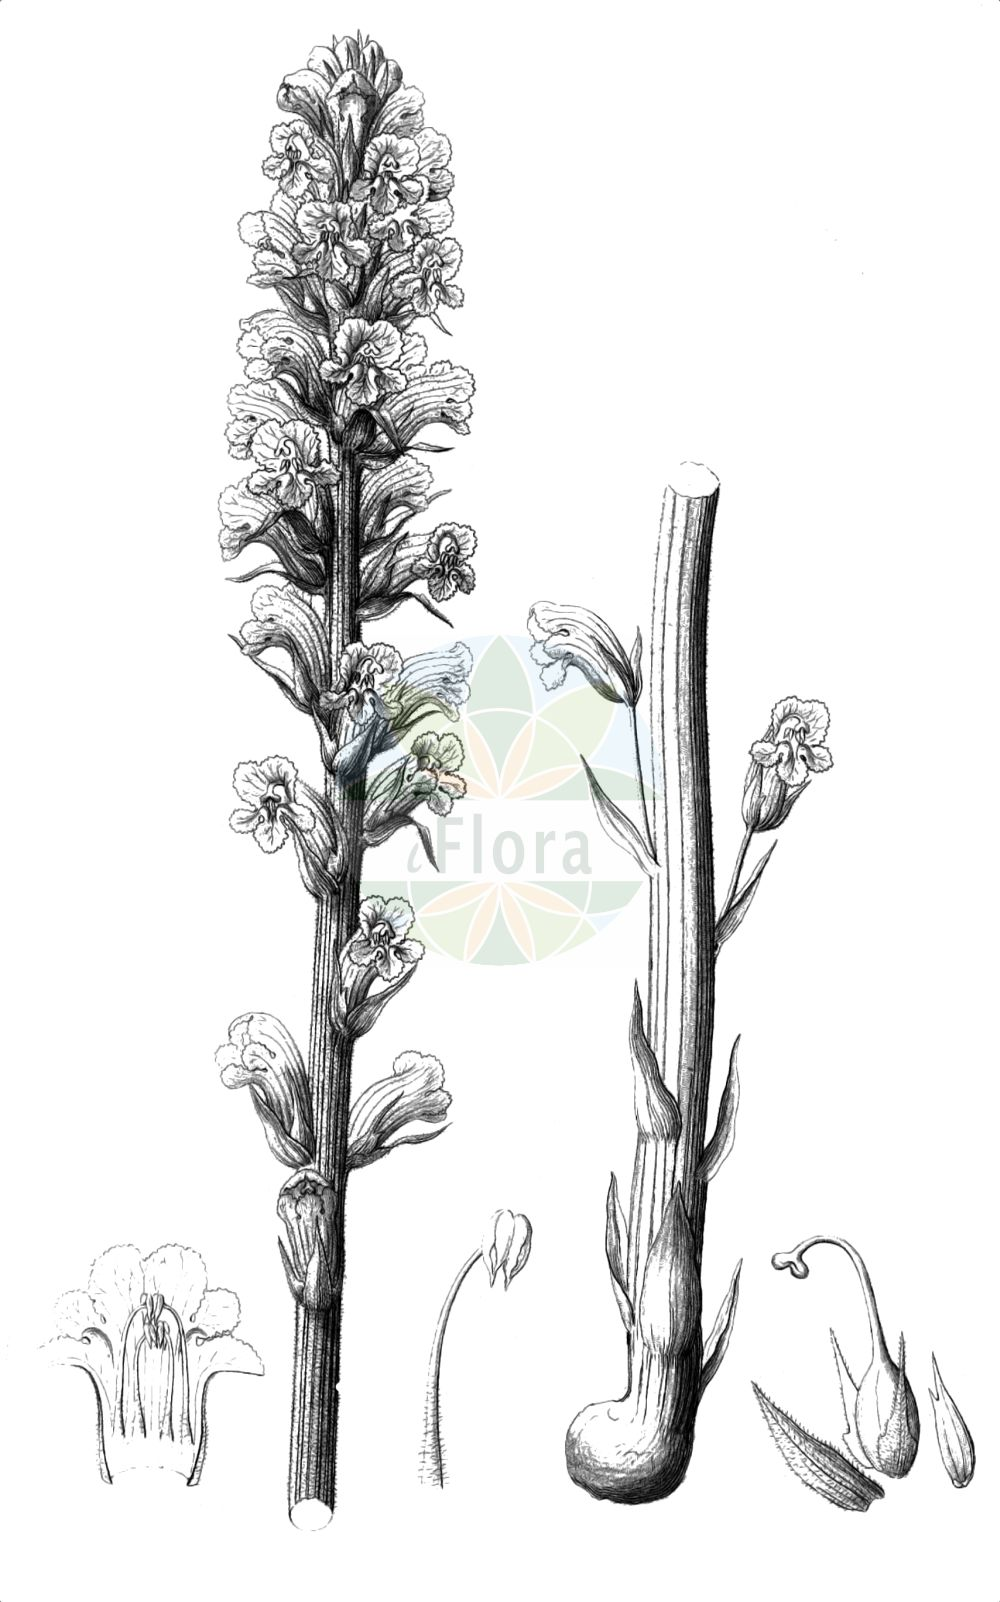 Historische Abbildung von Orobanche minor (Kleine Sommerwurz - Common Broomrape). Das Bild zeigt Blatt, Bluete, Frucht und Same. ---- Historical Drawing of Orobanche minor (Kleine Sommerwurz - Common Broomrape).The image is showing leaf, flower, fruit and seed.(Orobanche minor,Kleine Sommerwurz,Common Broomrape,Orobanche bovei,Orobanche concolor,Orobanche crithmi,Orobanche crithmi-maritimi,Orobanche euglossa,Orobanche grisebachii,Orobanche hyalina,Orobanche livida,Orobanche minor,Orobanche nudiflora,Orobanche palaestina,Orobanche pumila,Orobanche pyrrha,Orobanche salisii,Orobanche unicolor,Kleine Sommerwurz,Kleeteufel,Kleewuerger,Common Broomrape,Clover Broomrape,Hellroot,Lesser Broomrape,Small Broomrape,Orobanche,Sommerwurz,Broomrape,Orobanchaceae,Sommerwurzgewaechse,Broomrape family,Blatt,Bluete,Frucht,Same,leaf,flower,fruit,seed,Reichenbach (1823-1832))